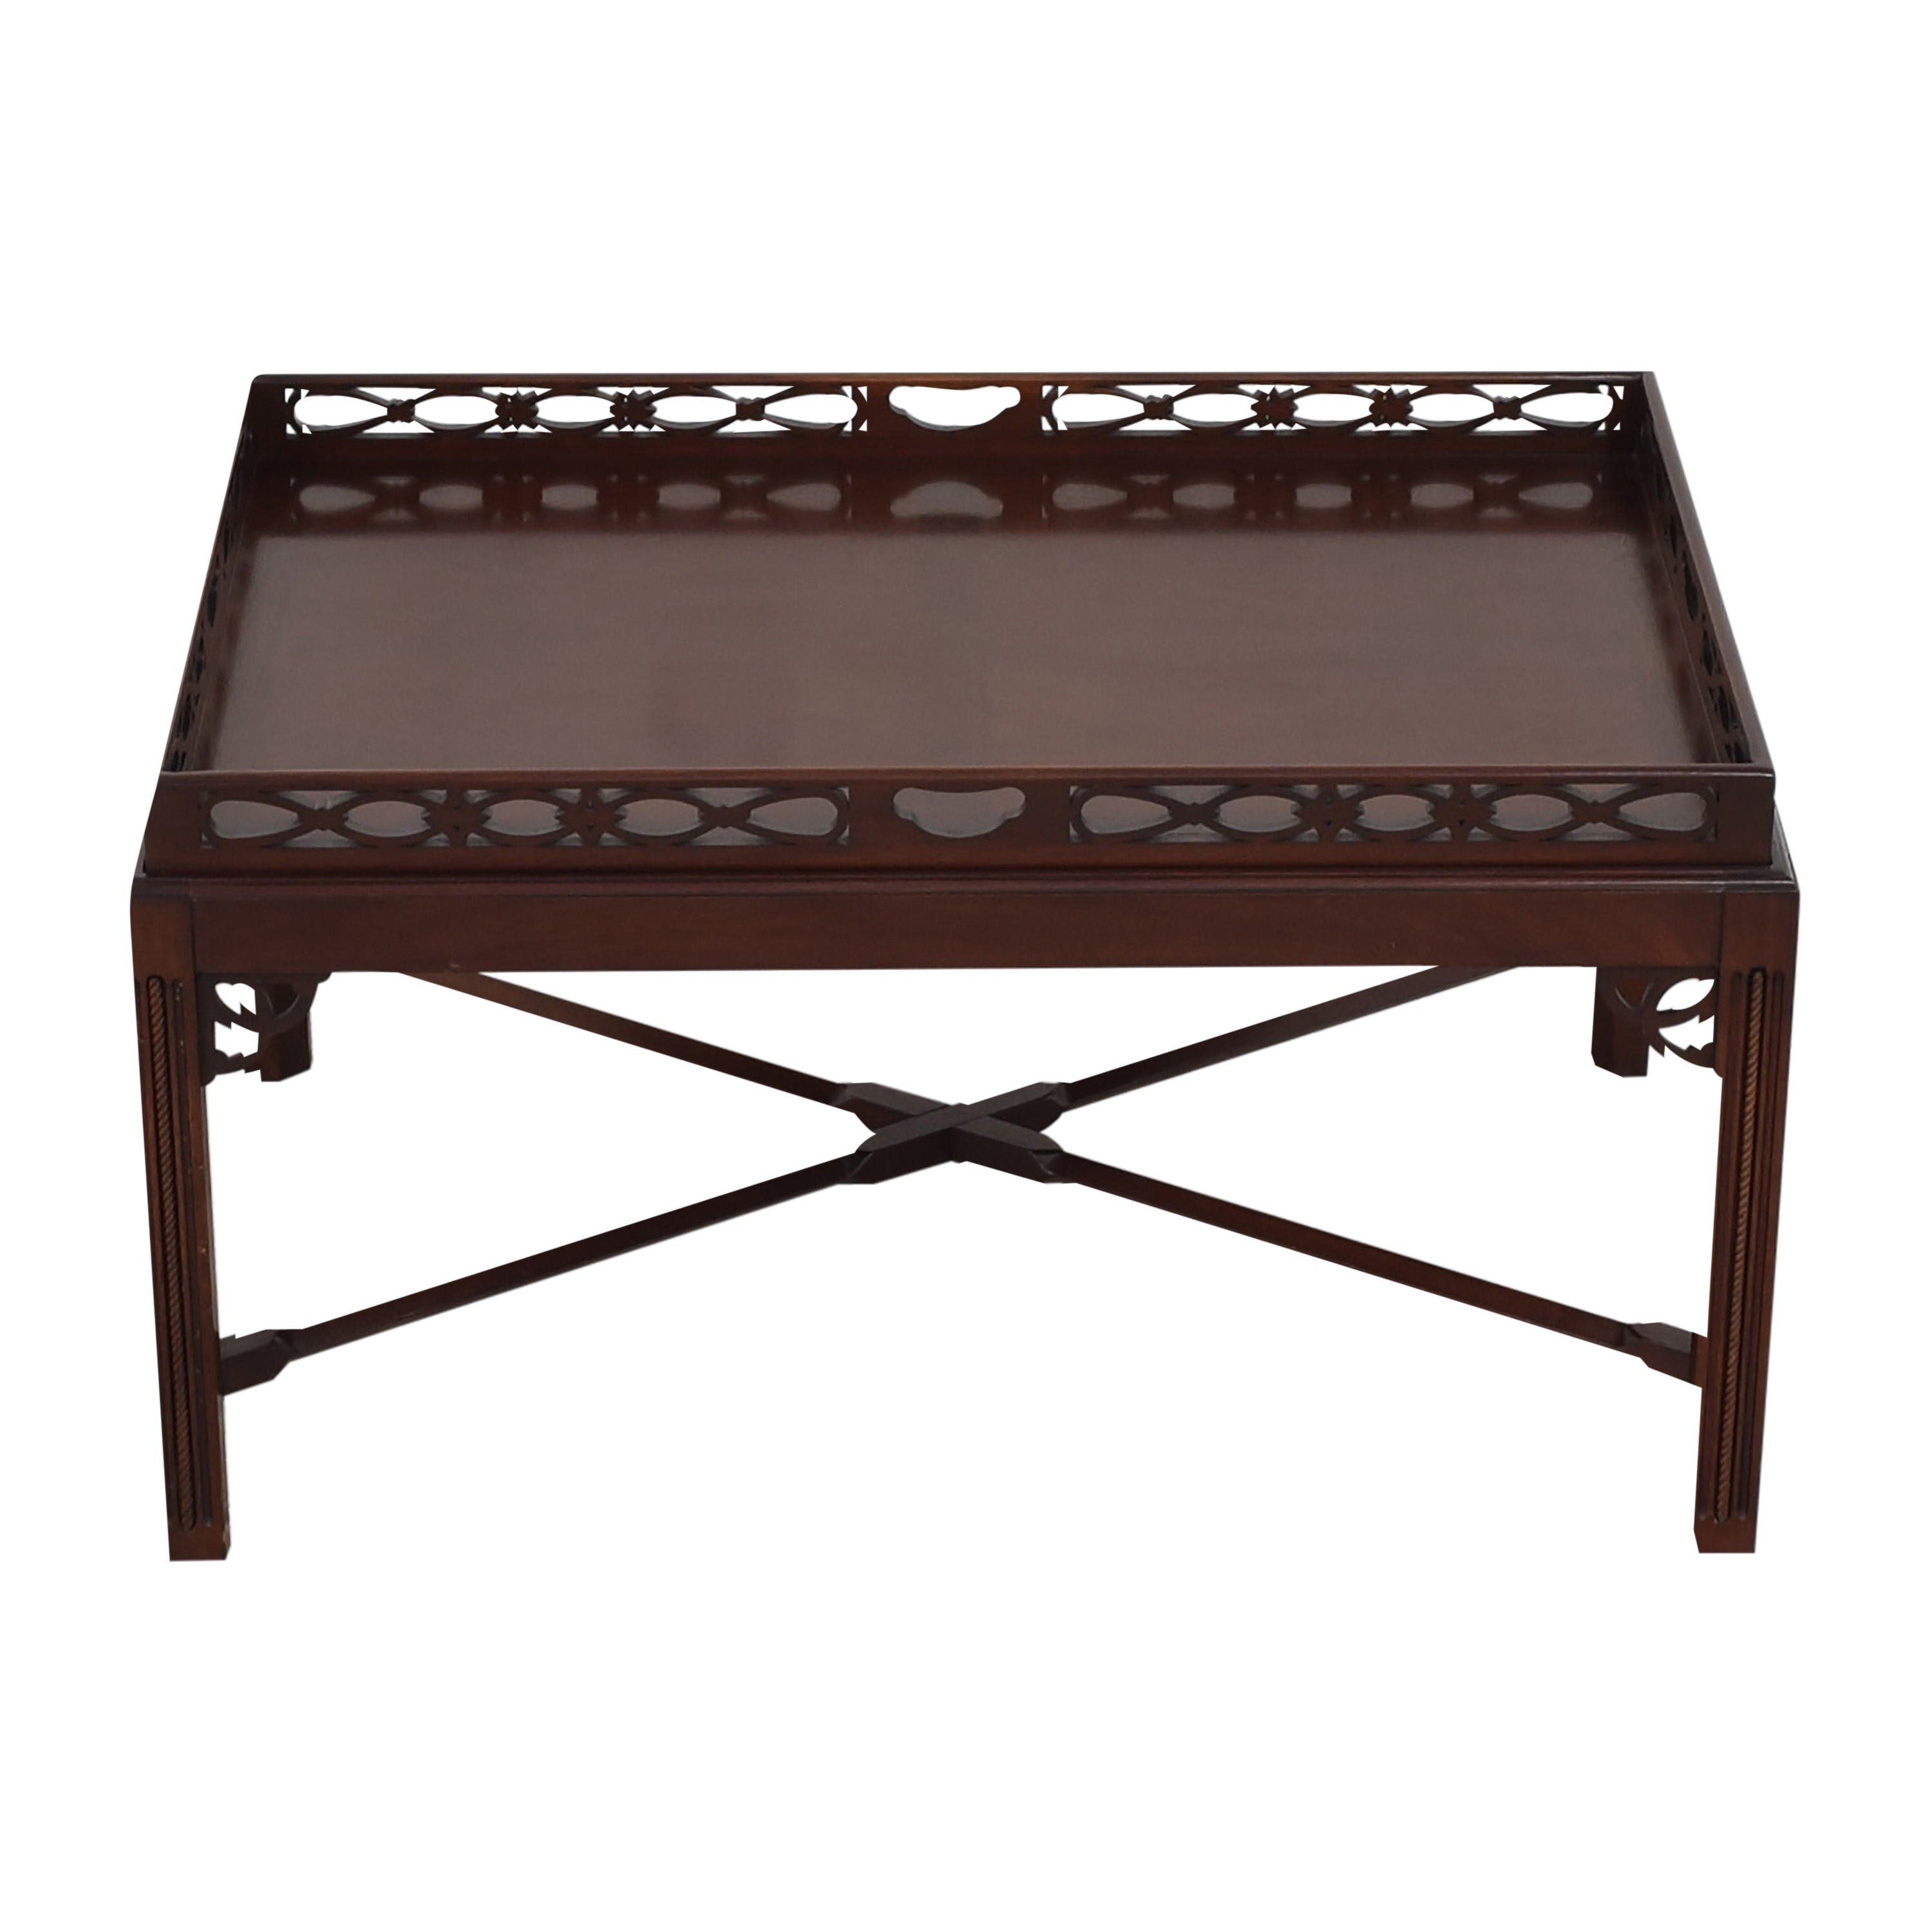 buy  Tray Top Coffee Table online